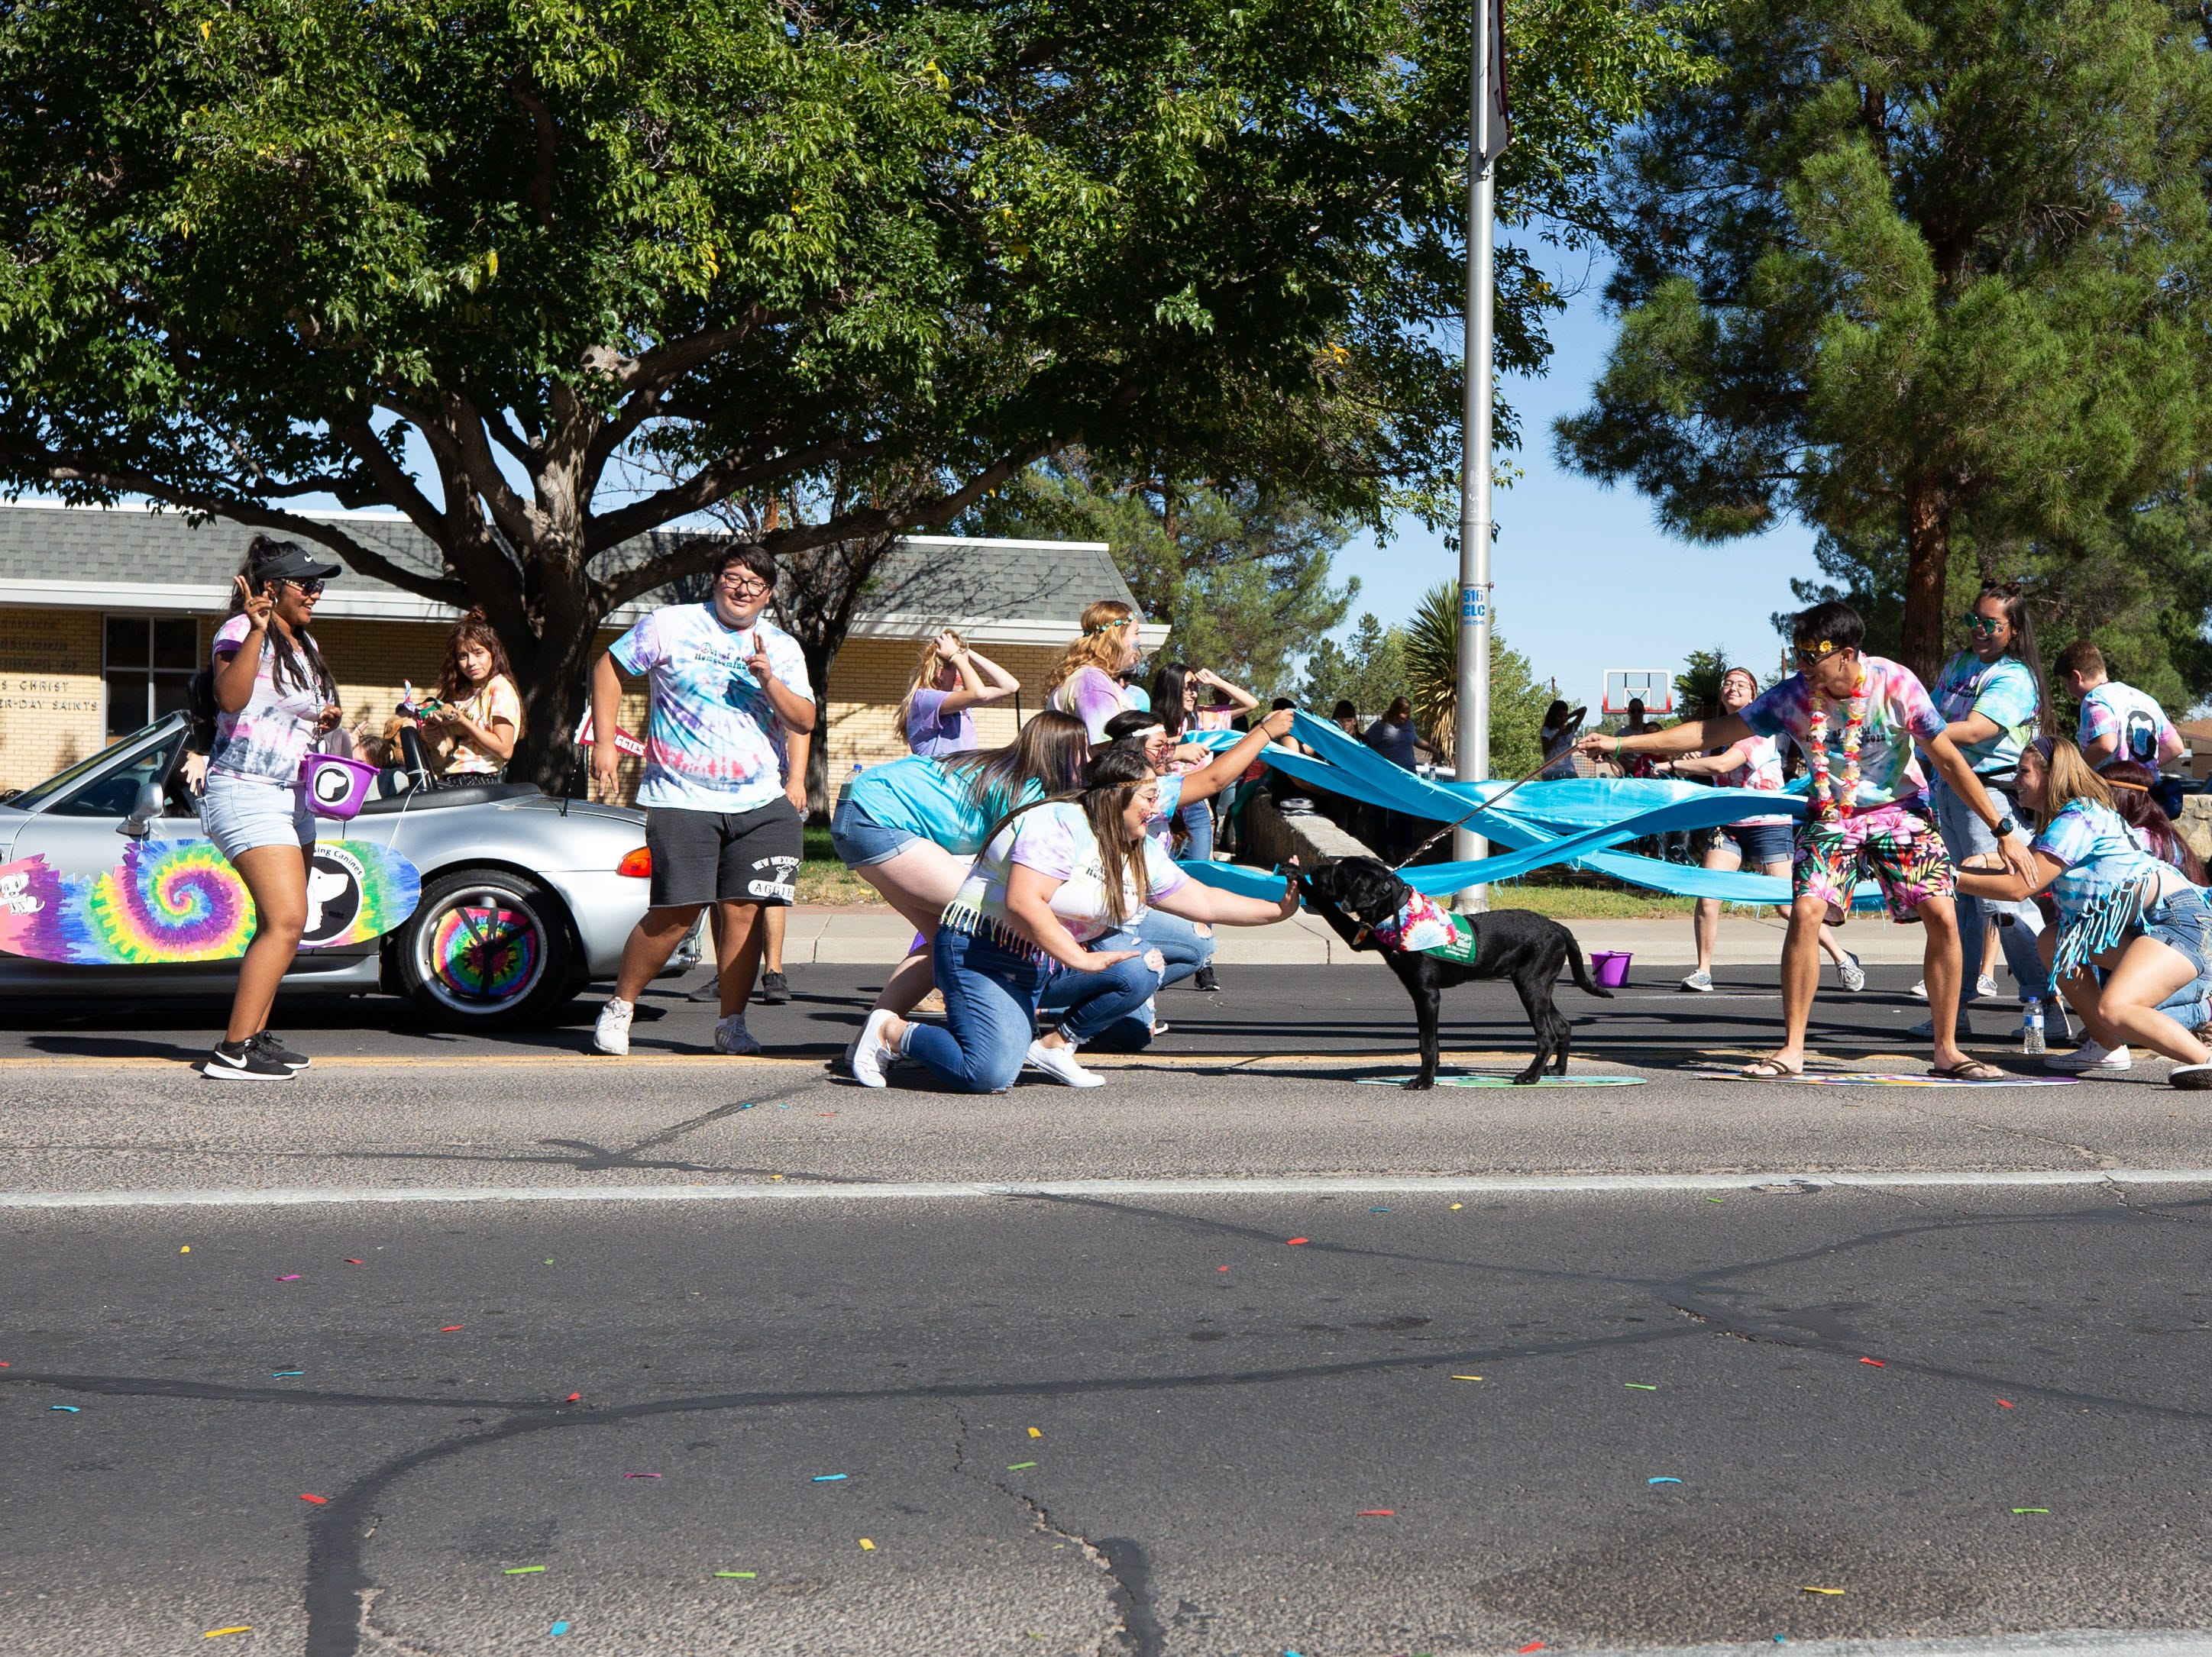 NMSU Raising Canines  entry with the high five giving surfing dog at the NMSU Homecoming Parade on October 6, 2018.